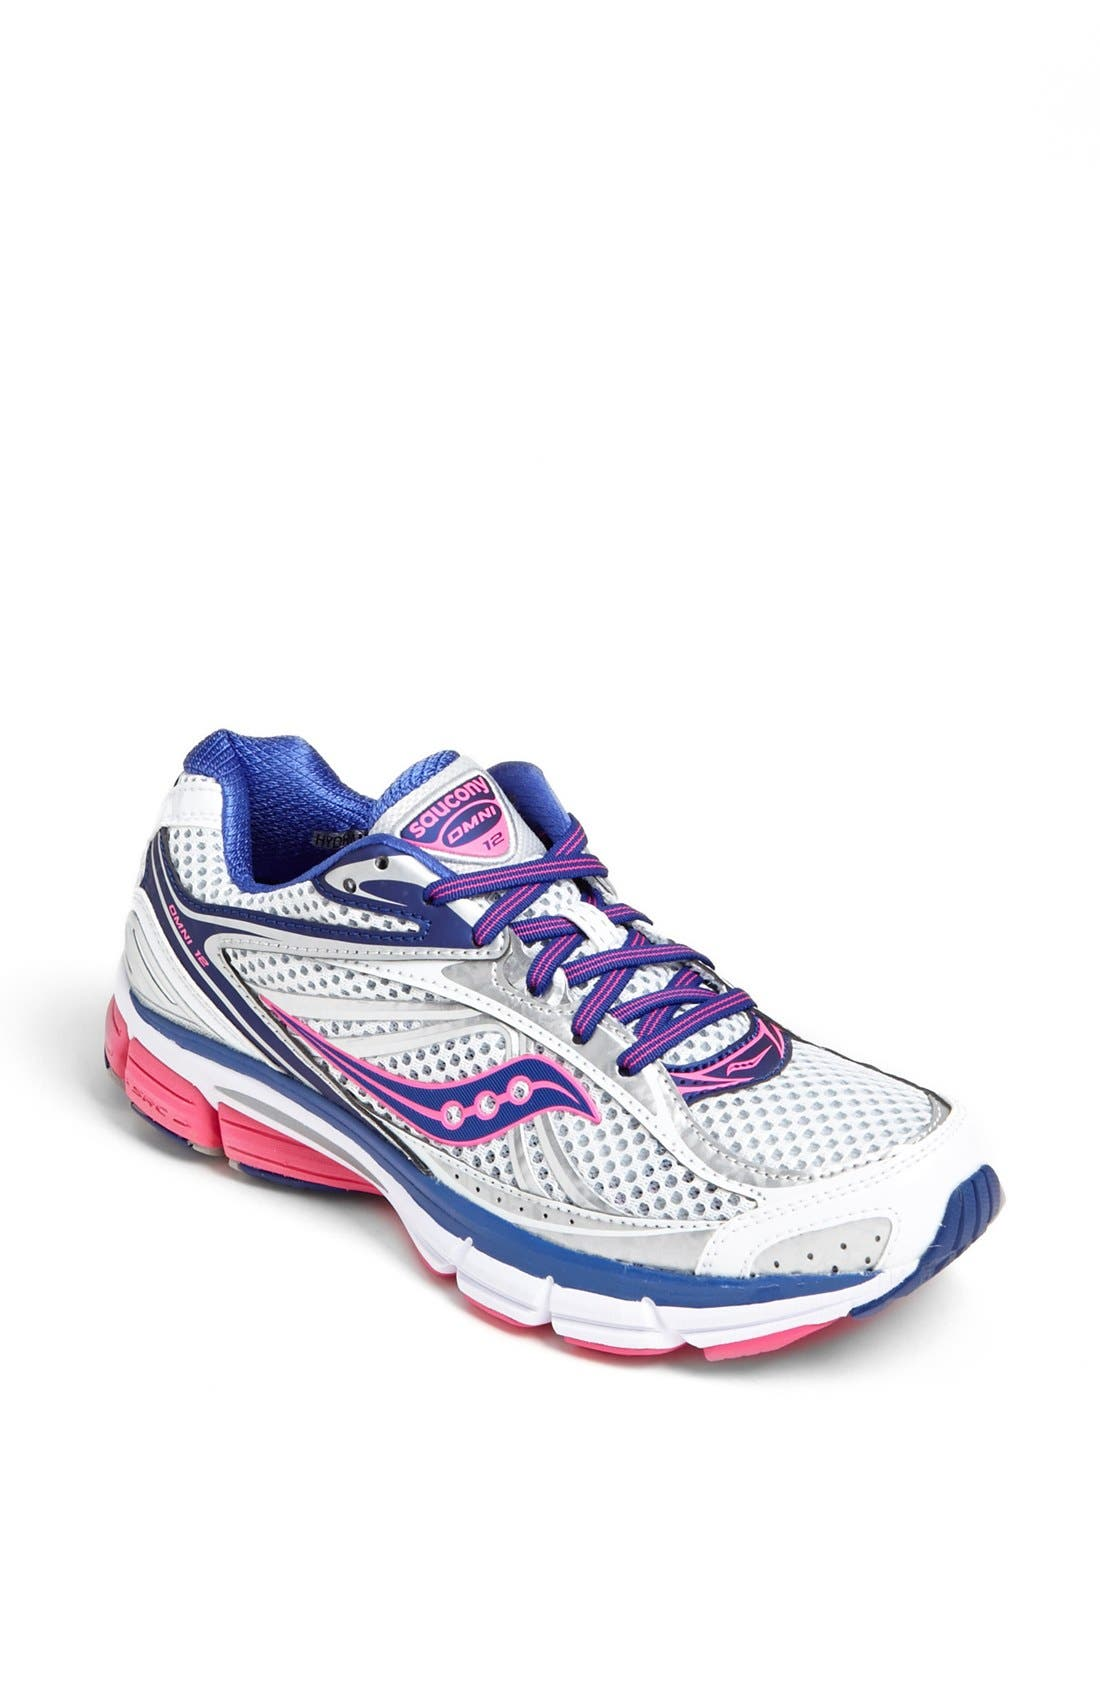 Main Image - Saucony 'Omni 12' Running Shoe (Women)